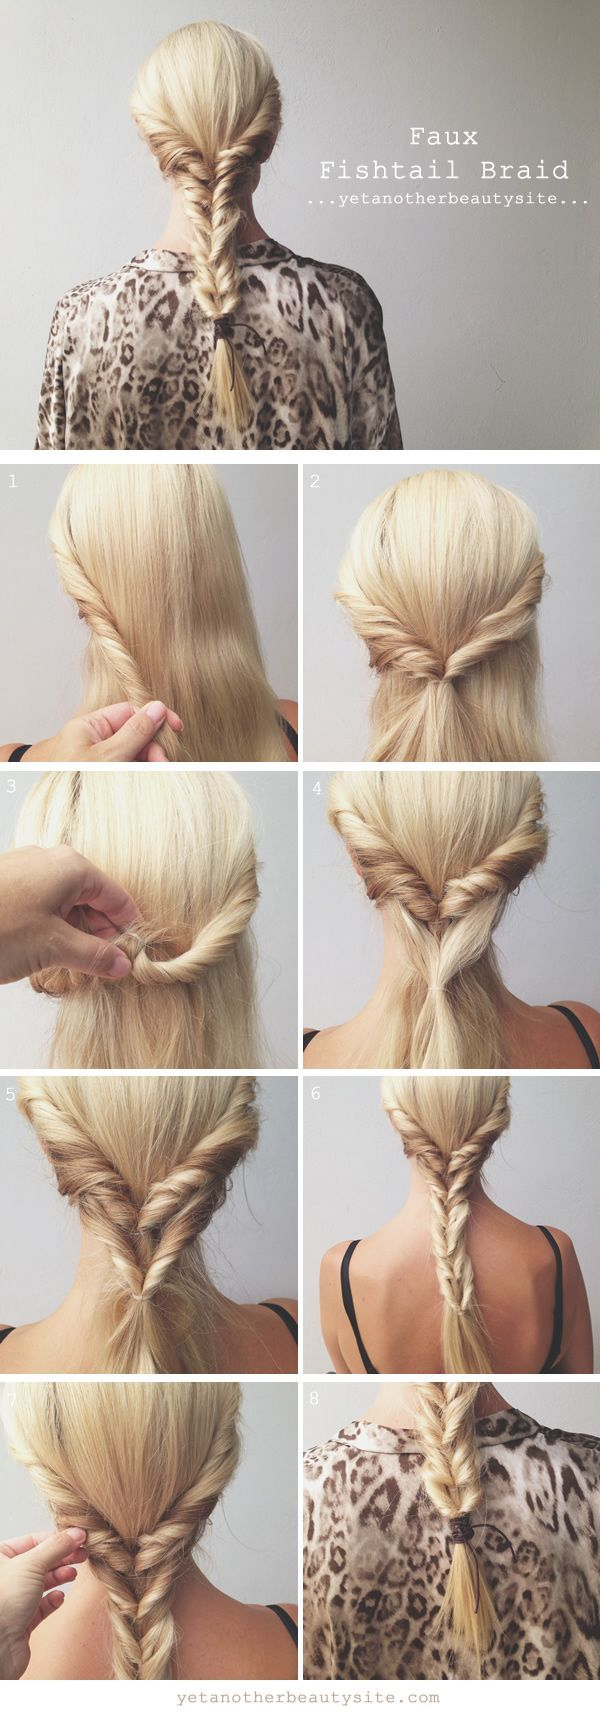 Faux Fishtail Braid Hairstyle Tutorial